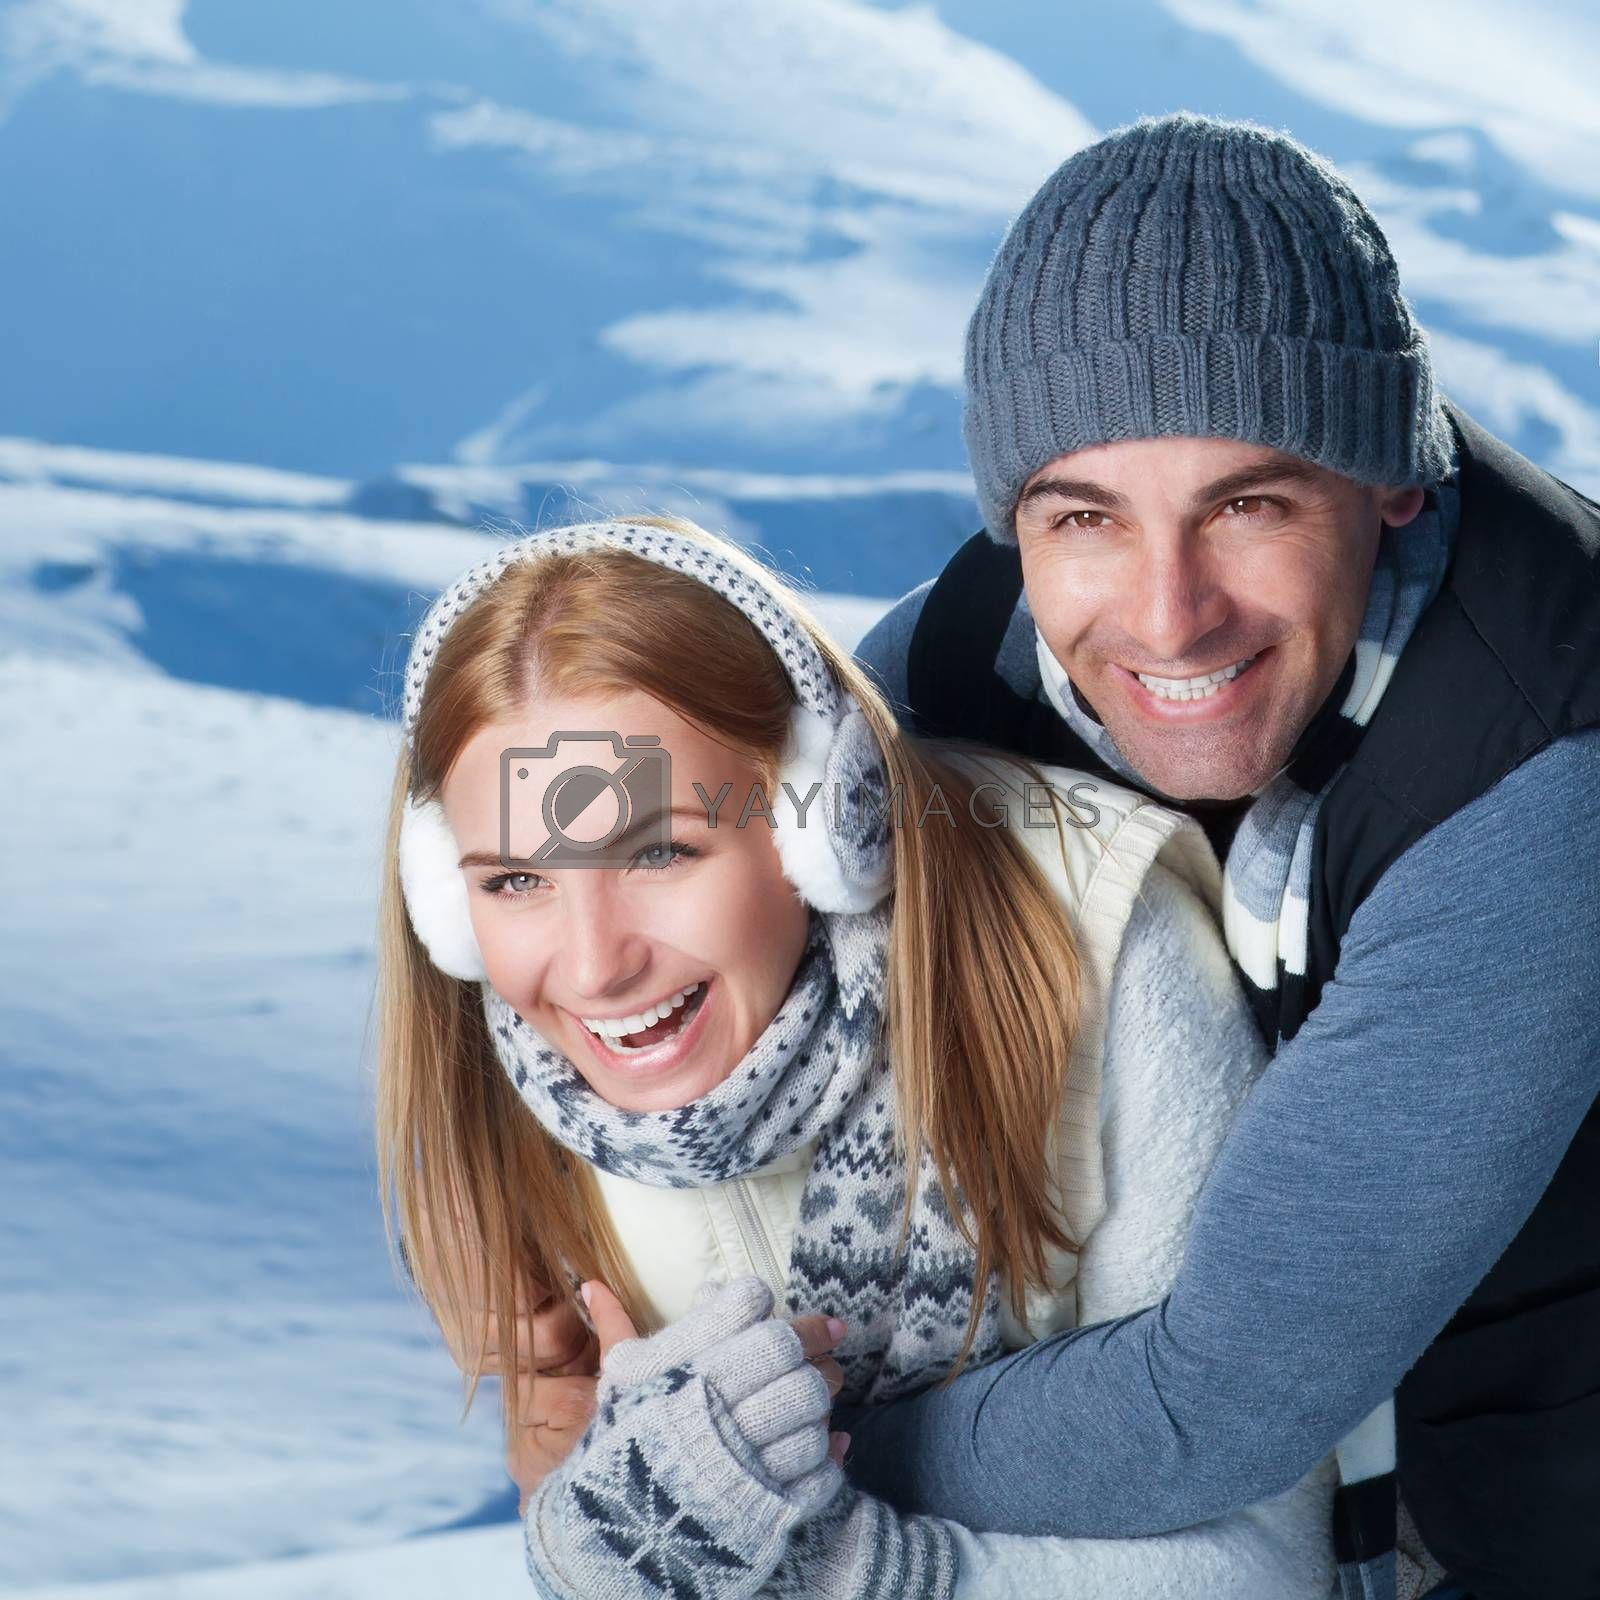 Closeup portrait of cheerful smiling couple playing with each other in the winter park, having fun in the mountains, happy wintertime holidays